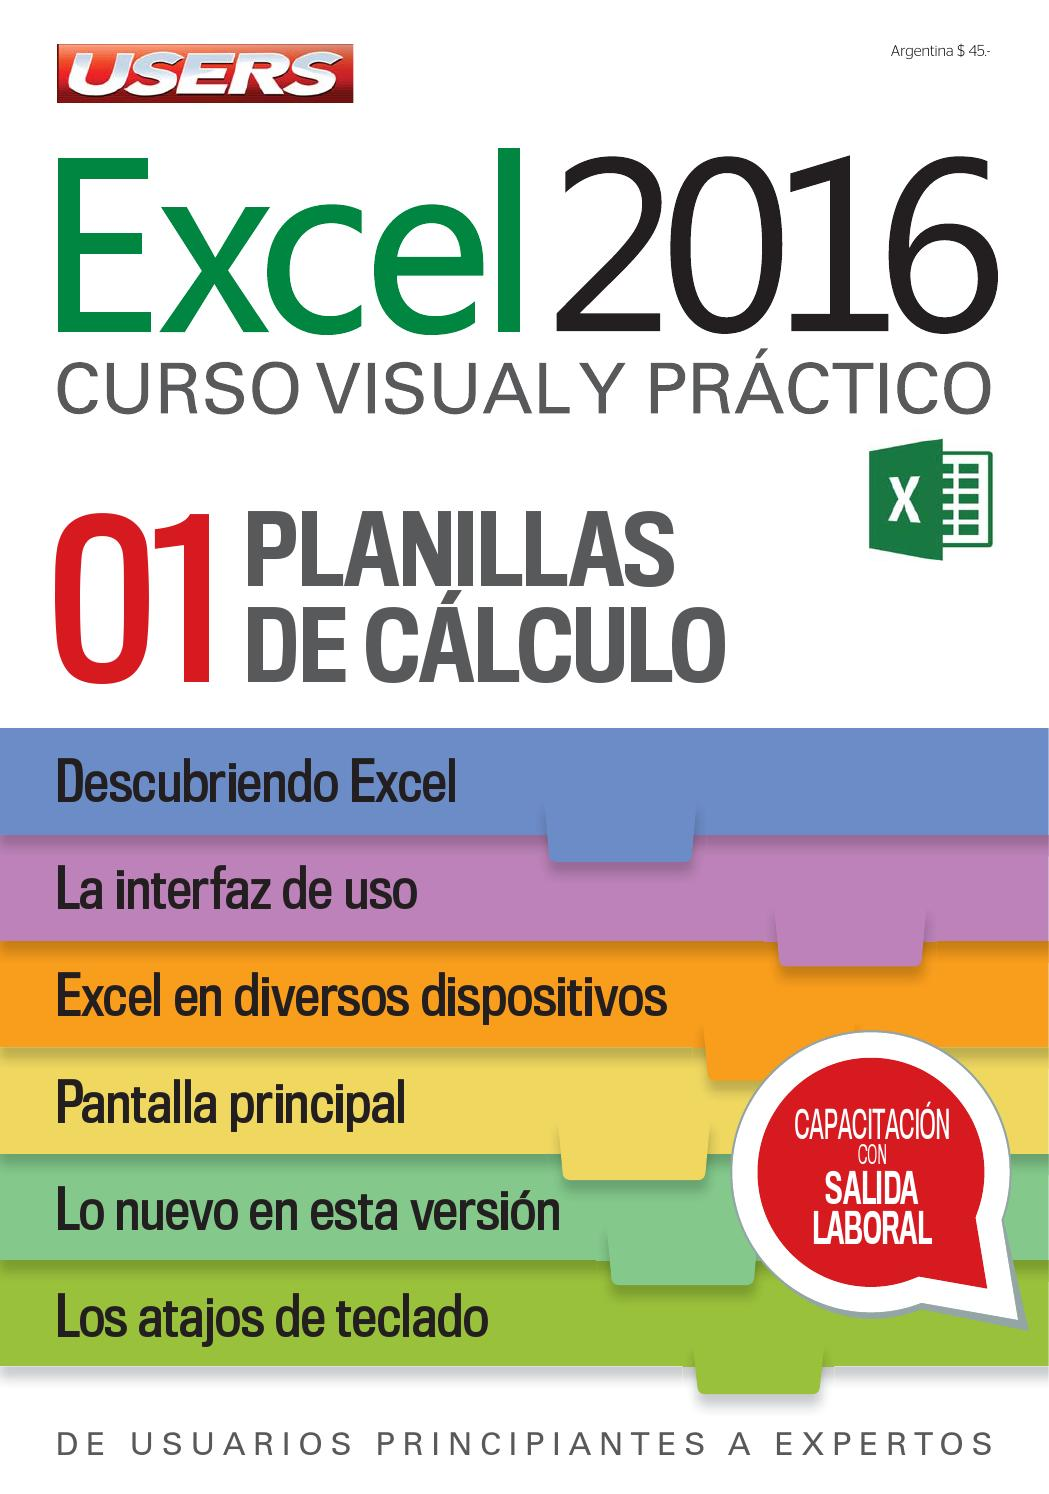 Libros De Excel Gratis Excel 2016 By Redusers Issuu